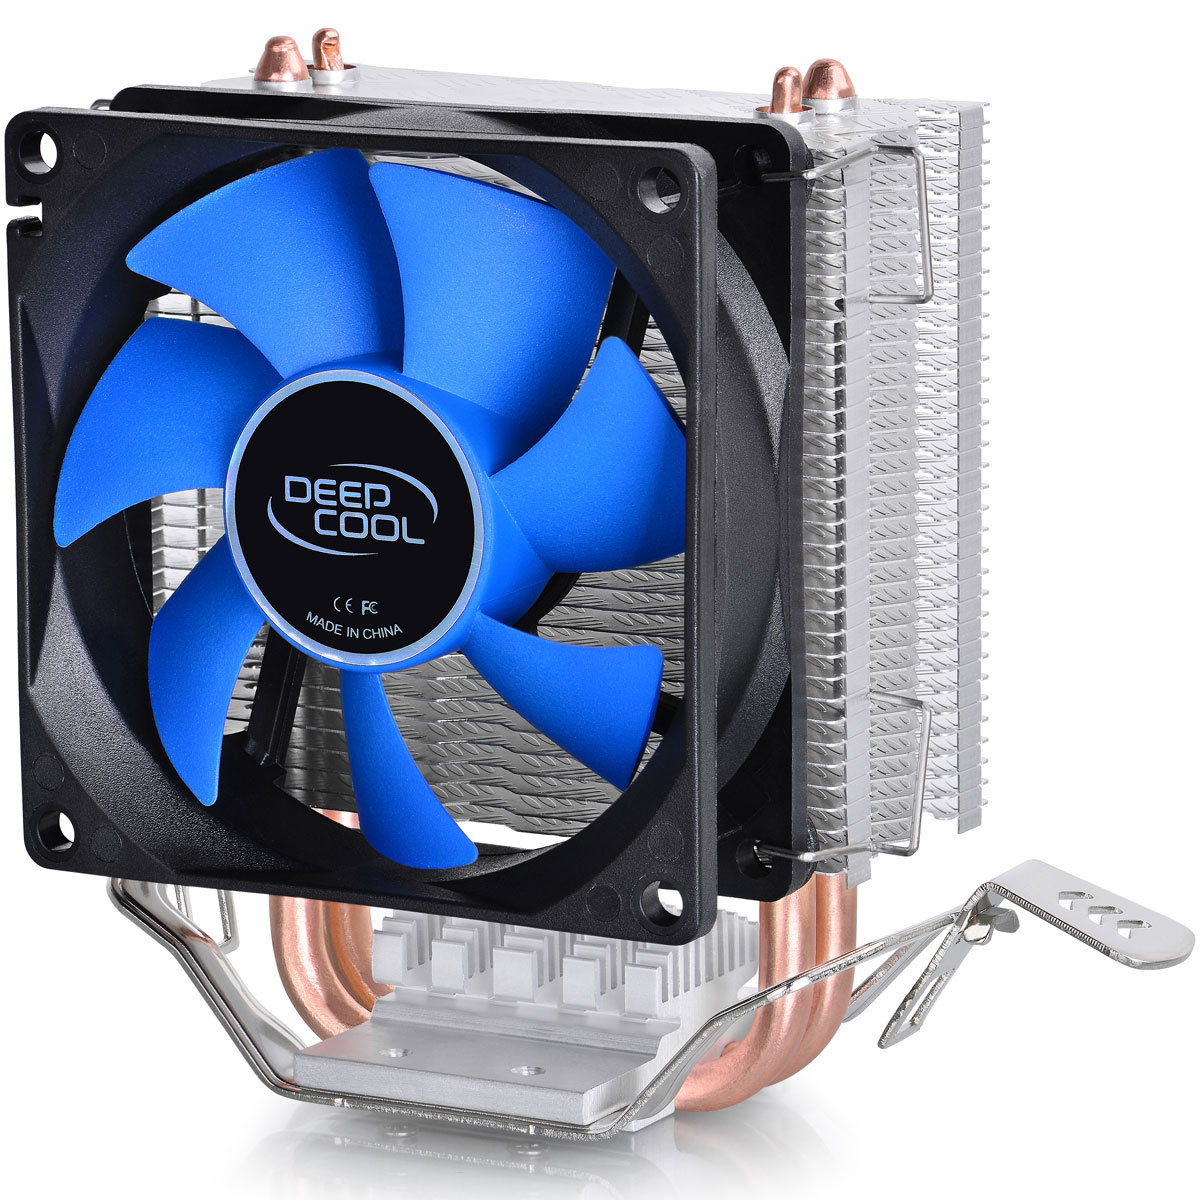 Deepcool Ice Edge Mini FS V2.0 кулер компьютерный ice edge mini fs v2 deepcool